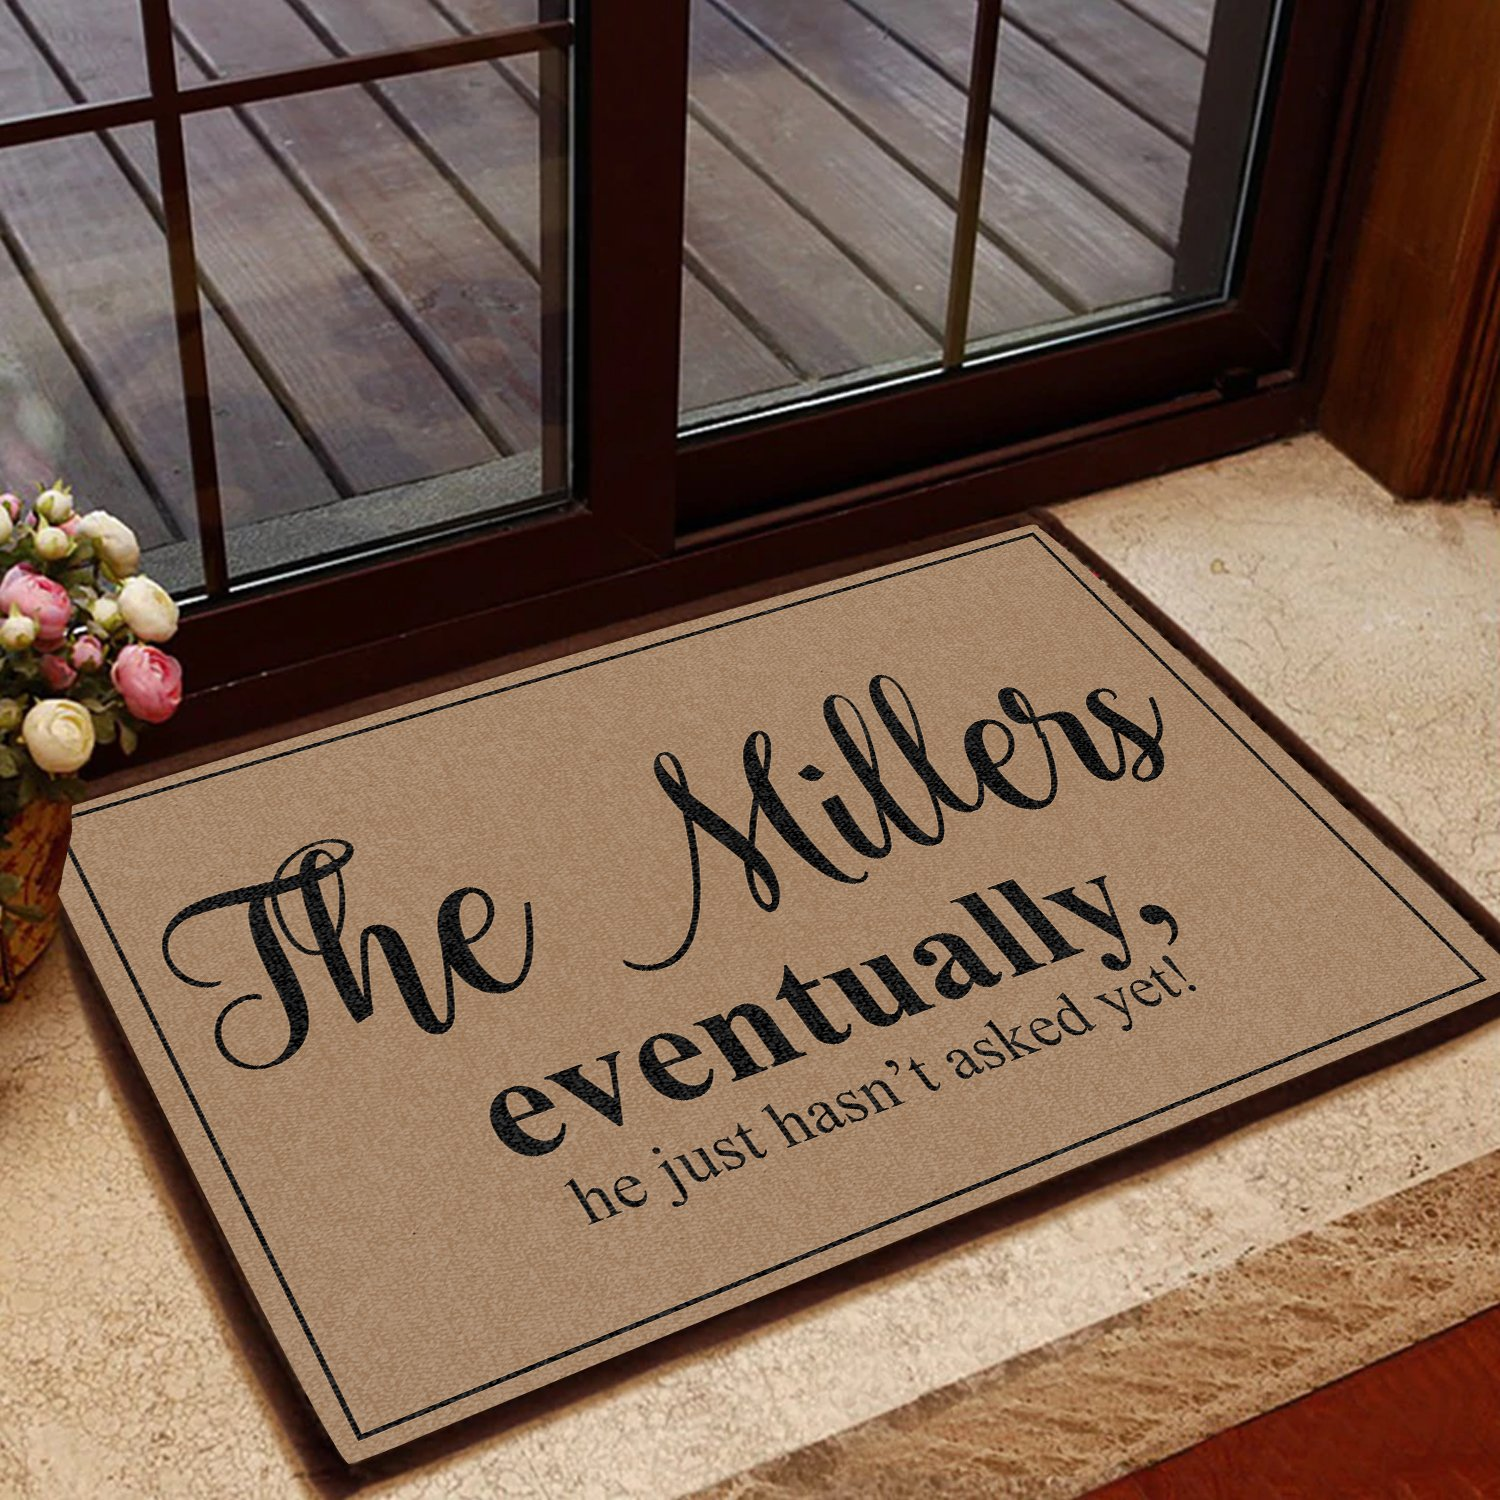 the millers eventually he just hasnt asked yet doormat 4